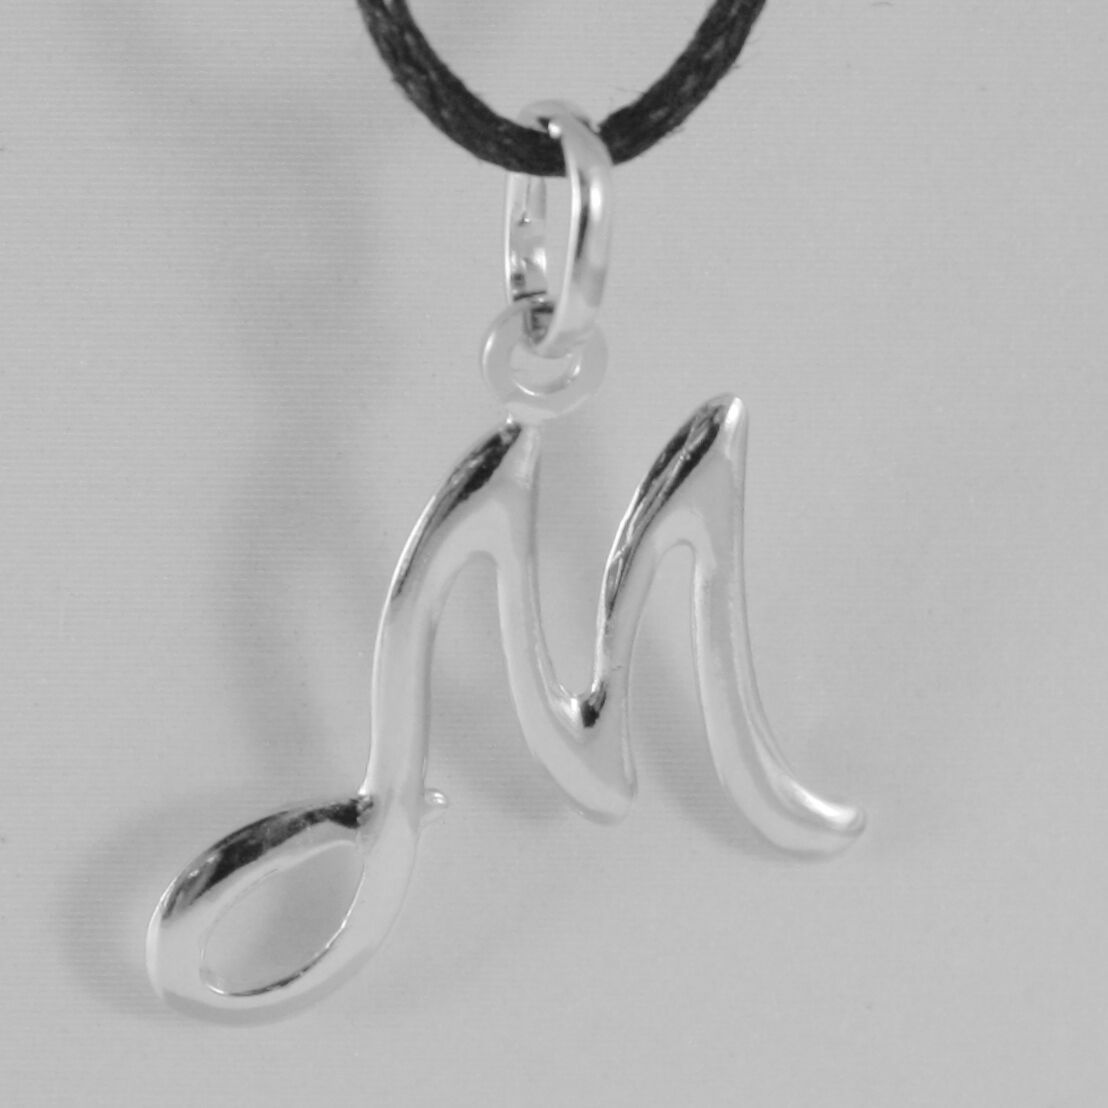 18K WHITE GOLD PENDANT CHARM INITIAL LETTER M, MADE IN ITALY 1.0 INCHES, 25 MM